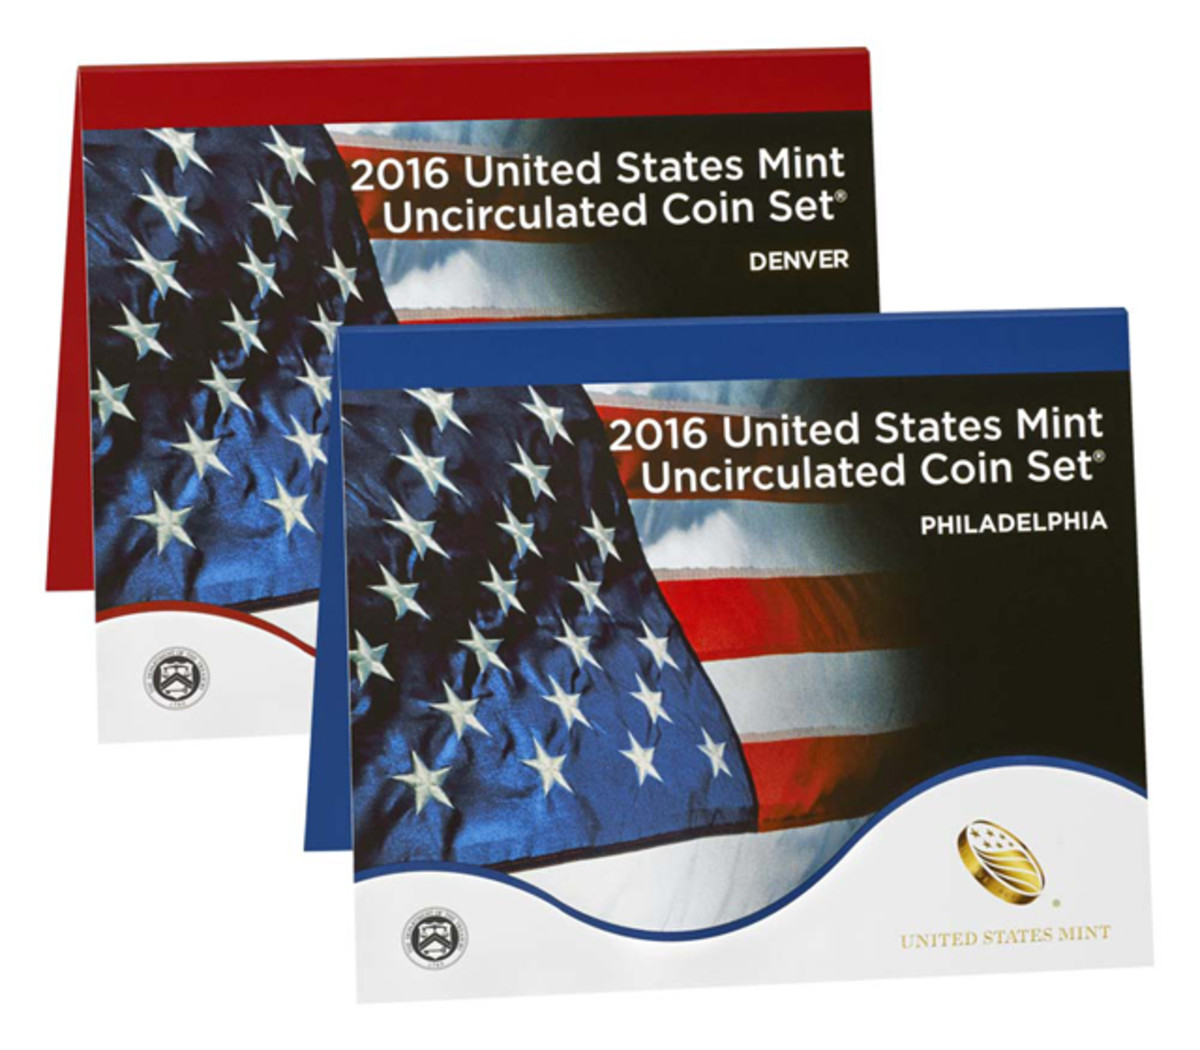 The 2016 uncirculated mint set went on sale May 18.